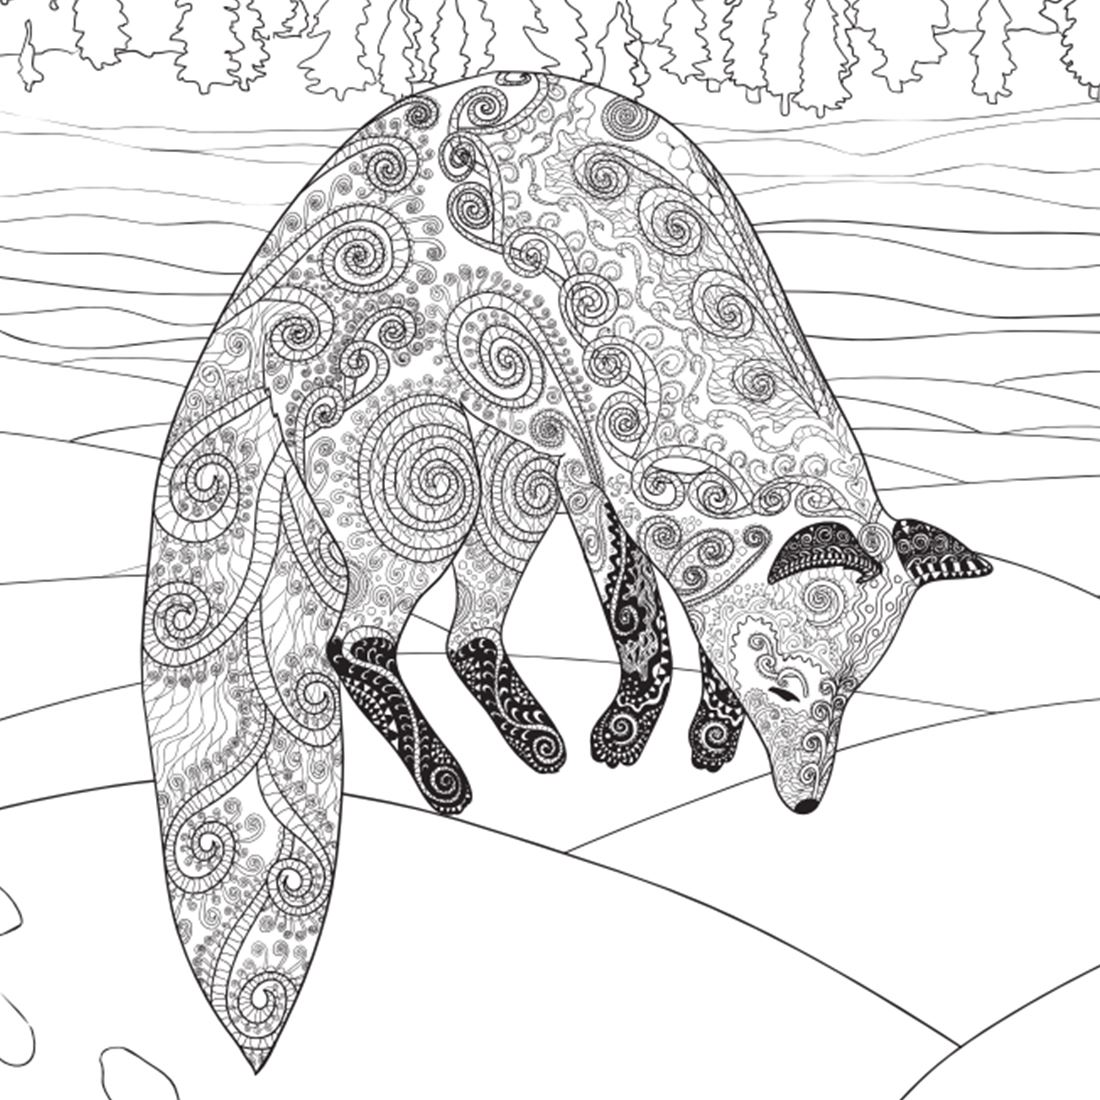 Coloring book drawing of a fox